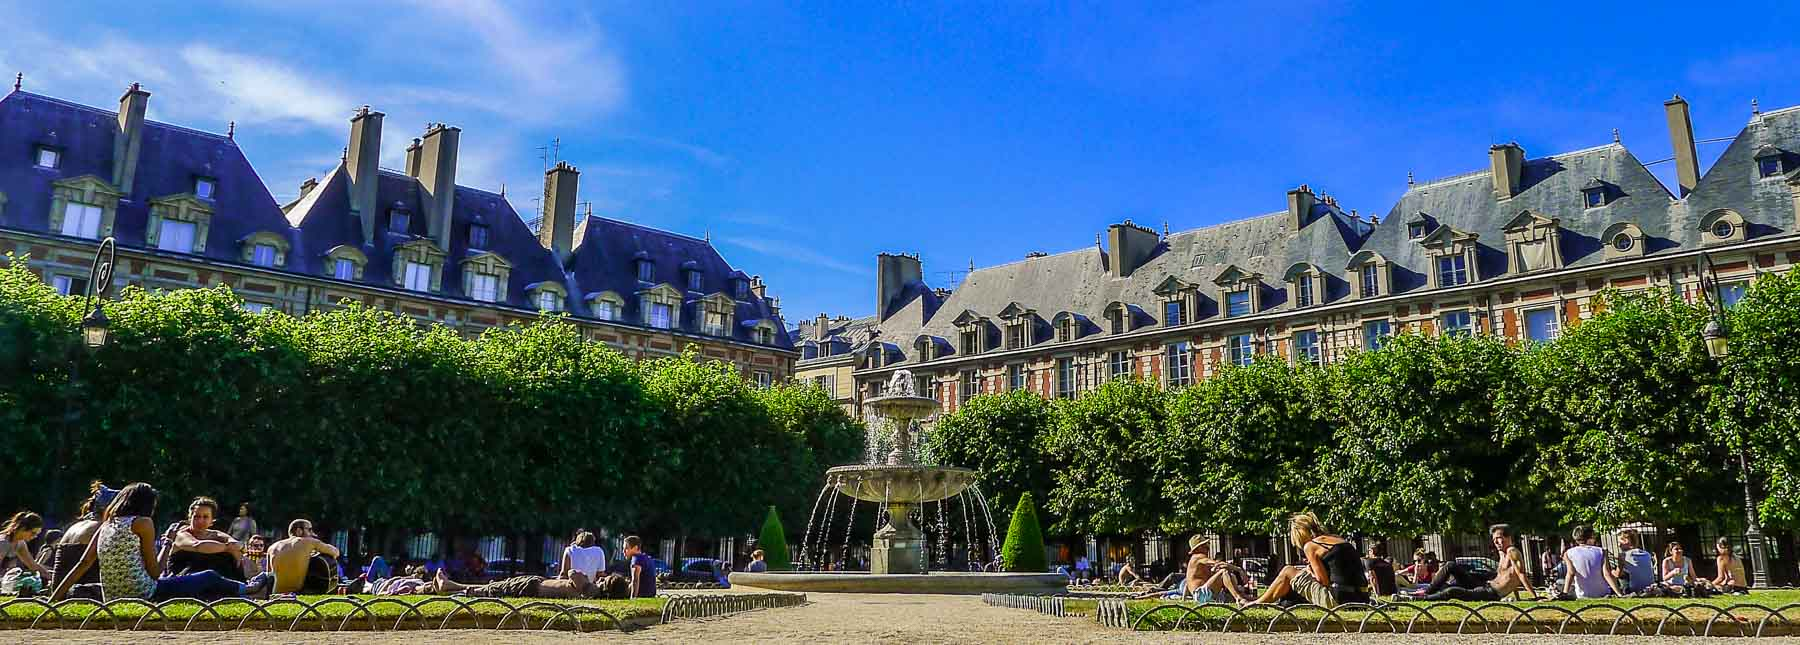 People on the lawns at Place de Vosges.